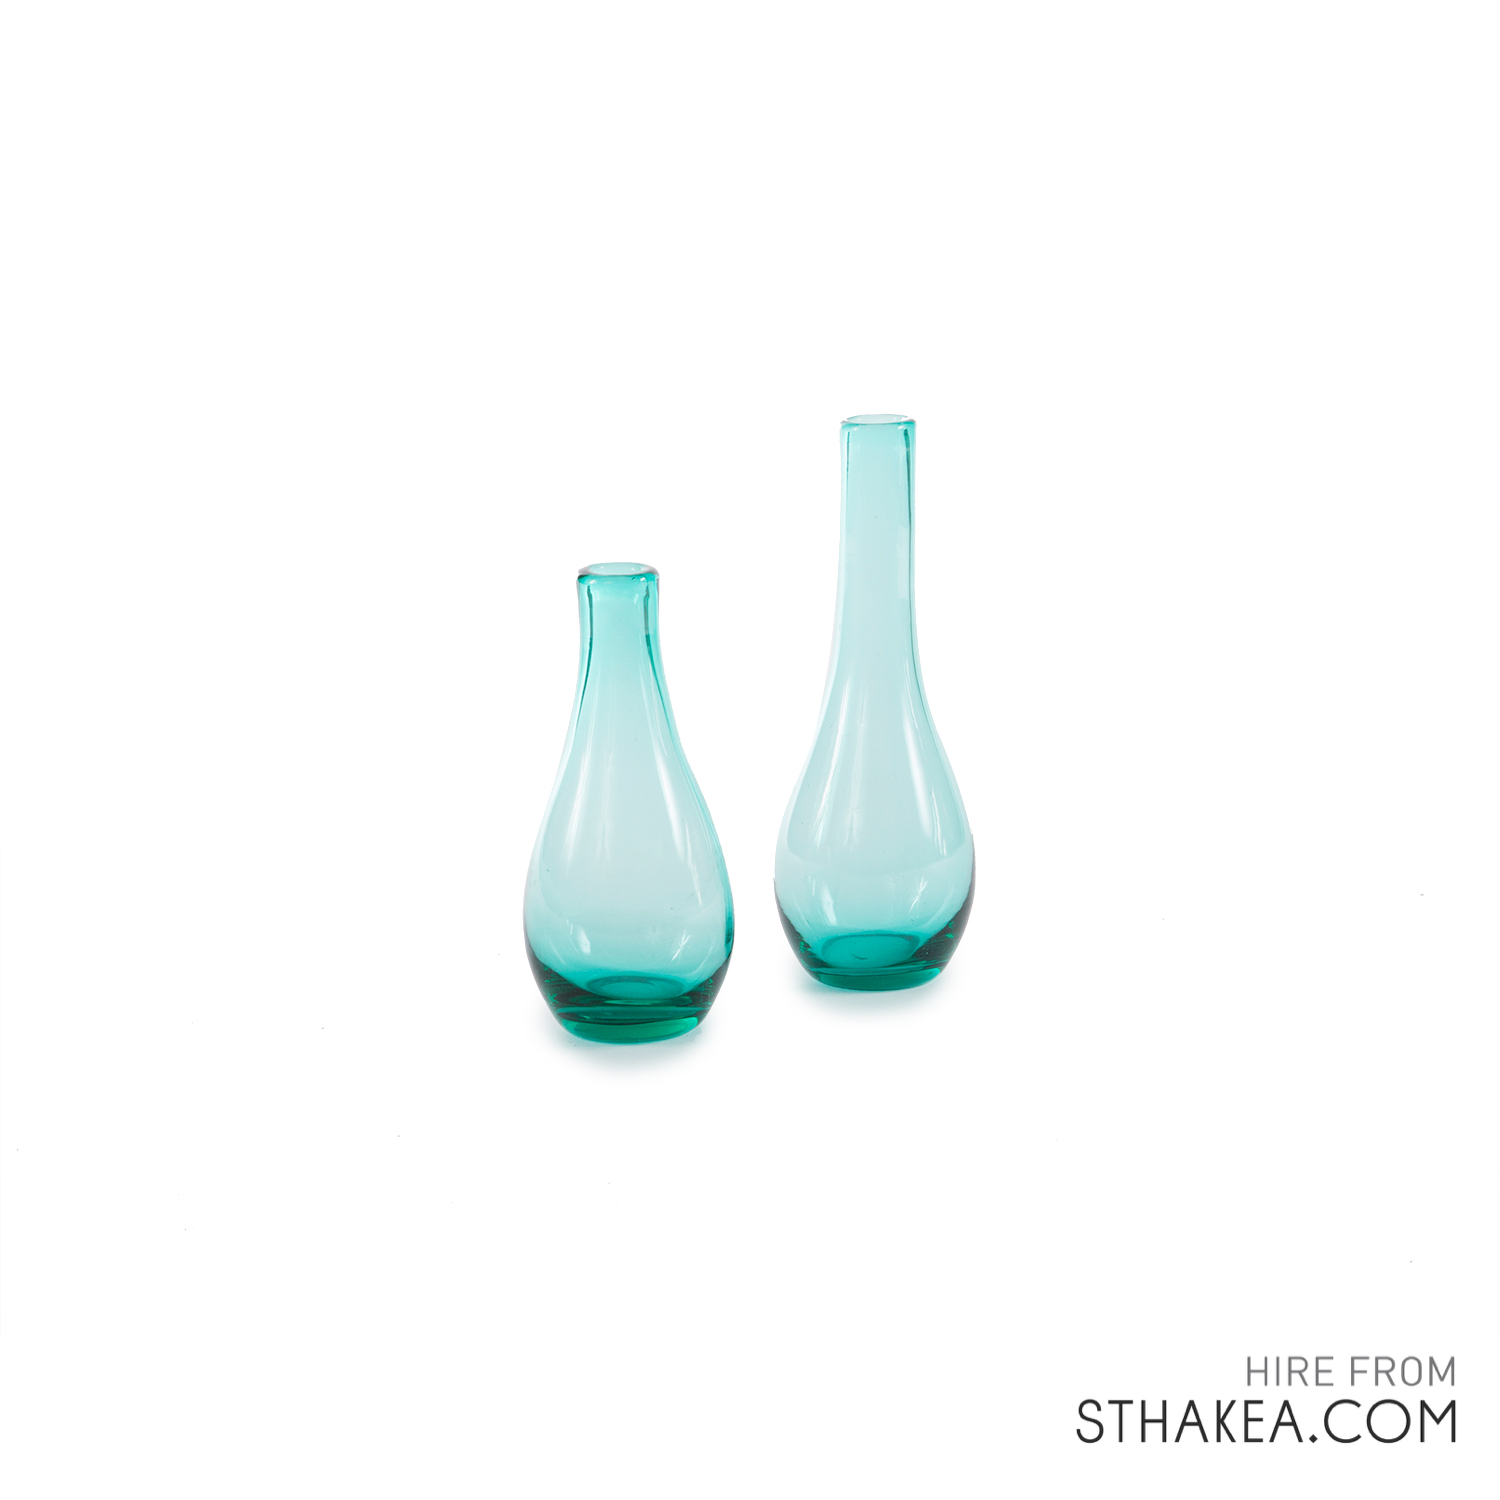 St Hakea Melbourne Hire Sea Blue Bubble Vases.jpg